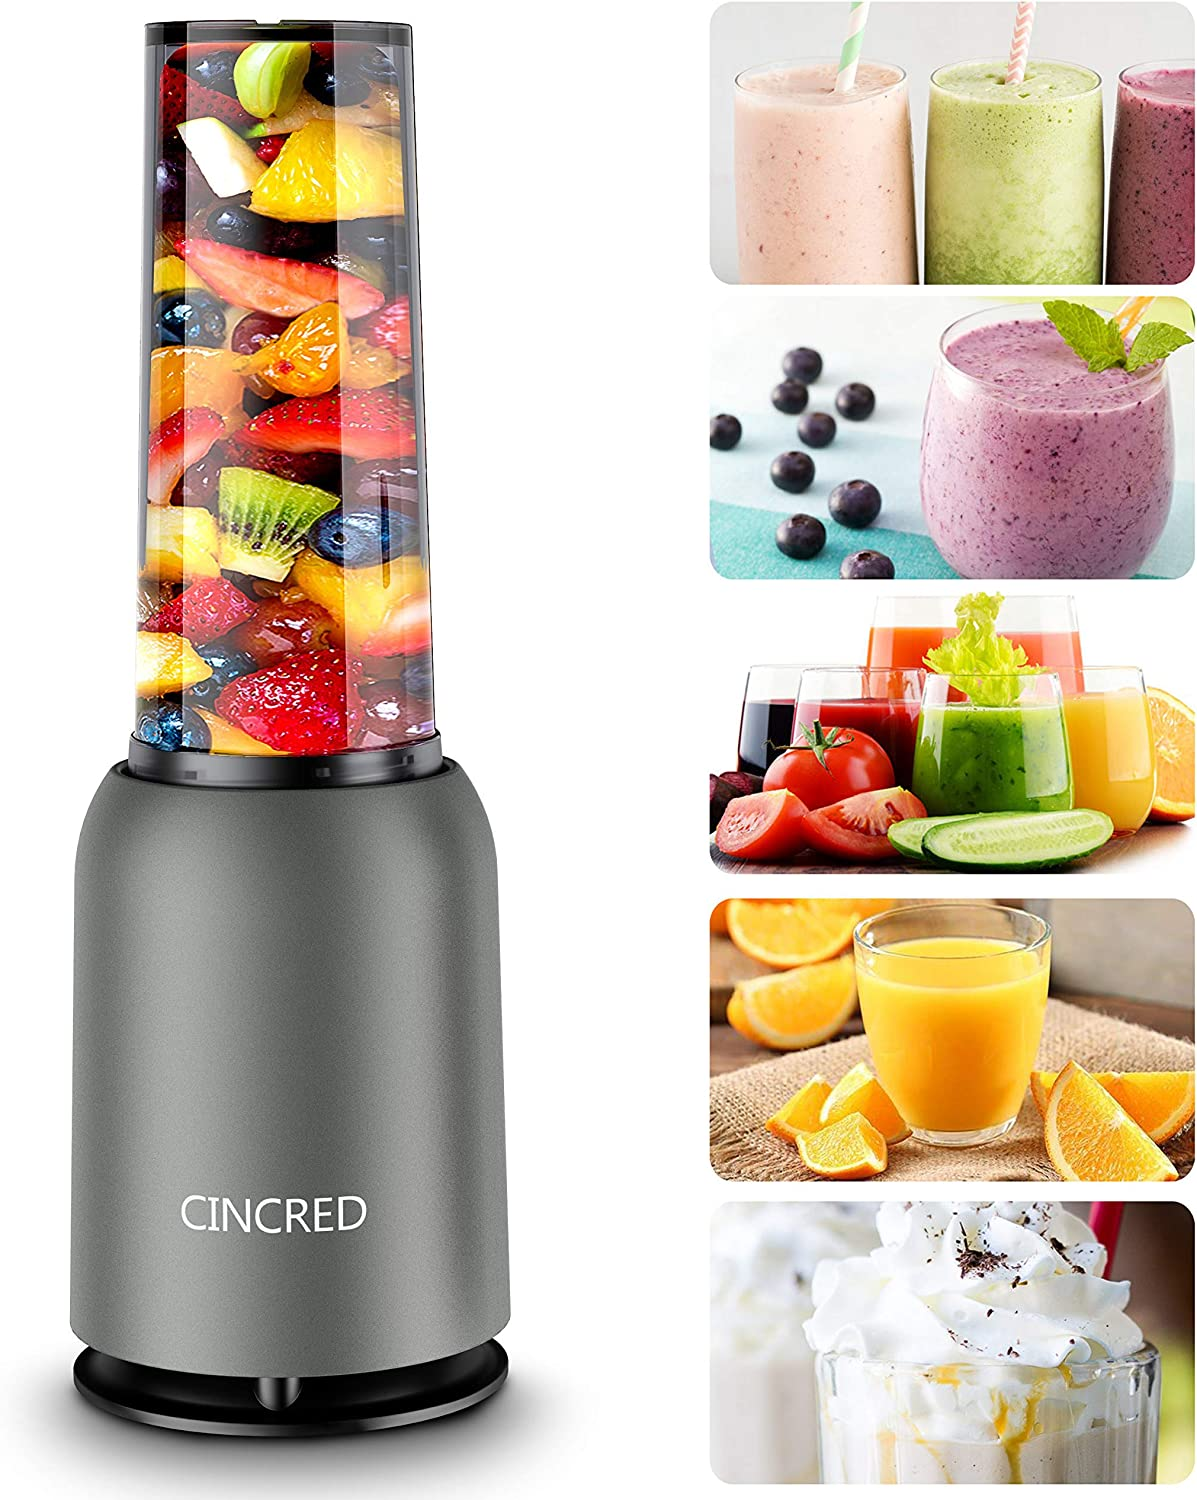 Best Blender For Protein Shakes, Cincred Blender